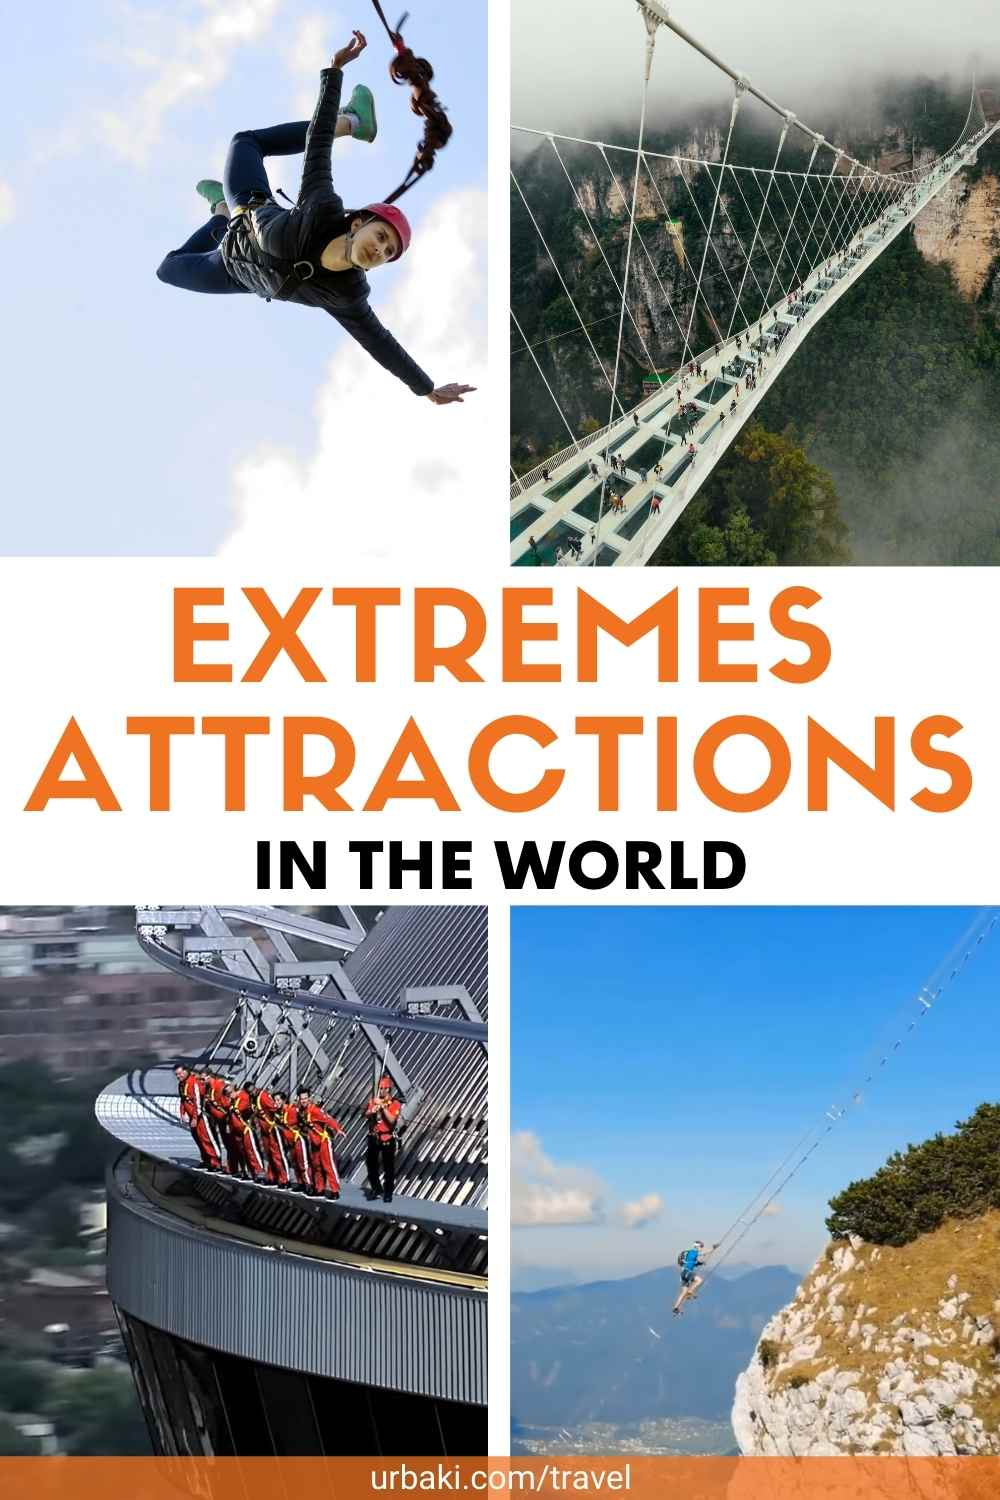 Extremes Attractions